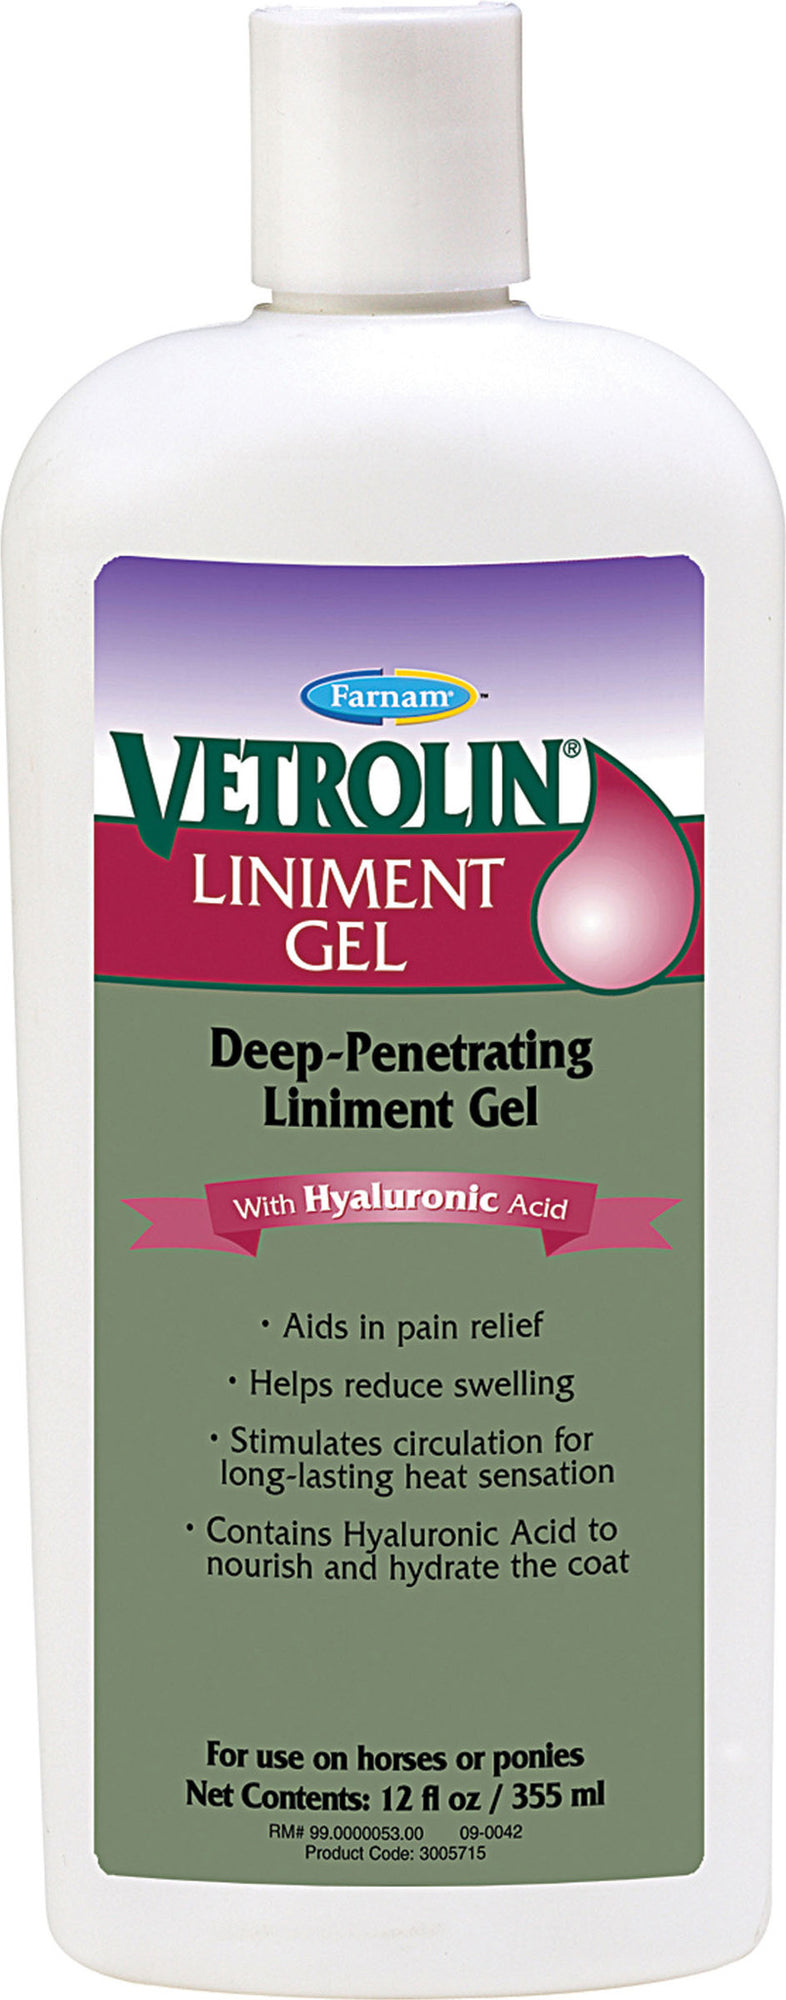 VETROLIN LINIMENT GEL WITH HA FOR EQUIN